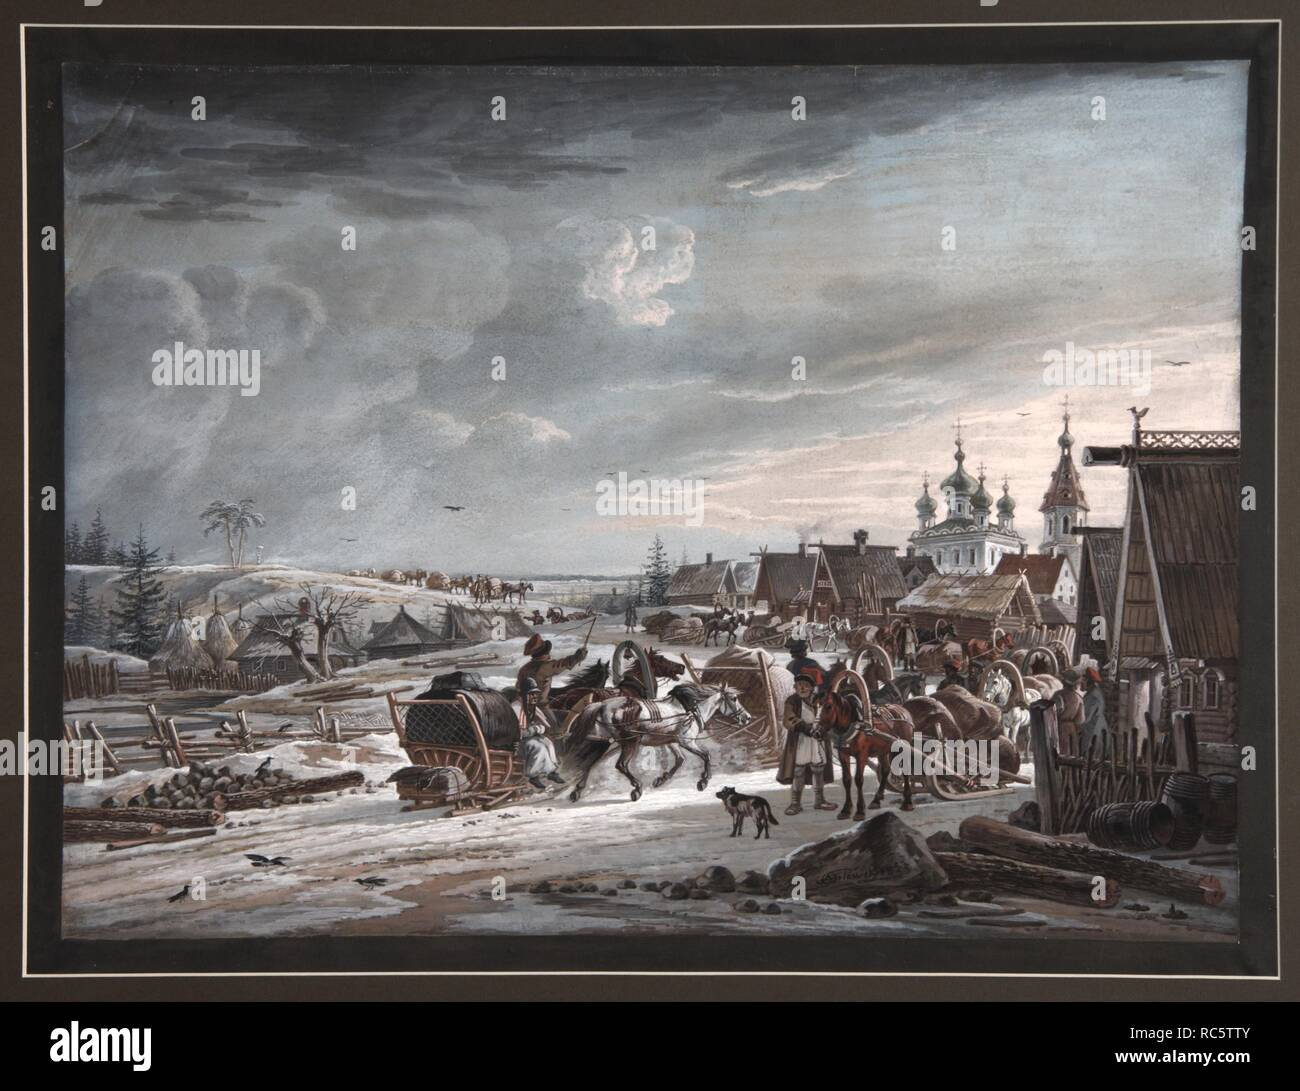 Winter. Museum: PRIVATE COLLECTION. Author: Orlowski (Orlovsky), Alexander Osipovich. Stock Photo